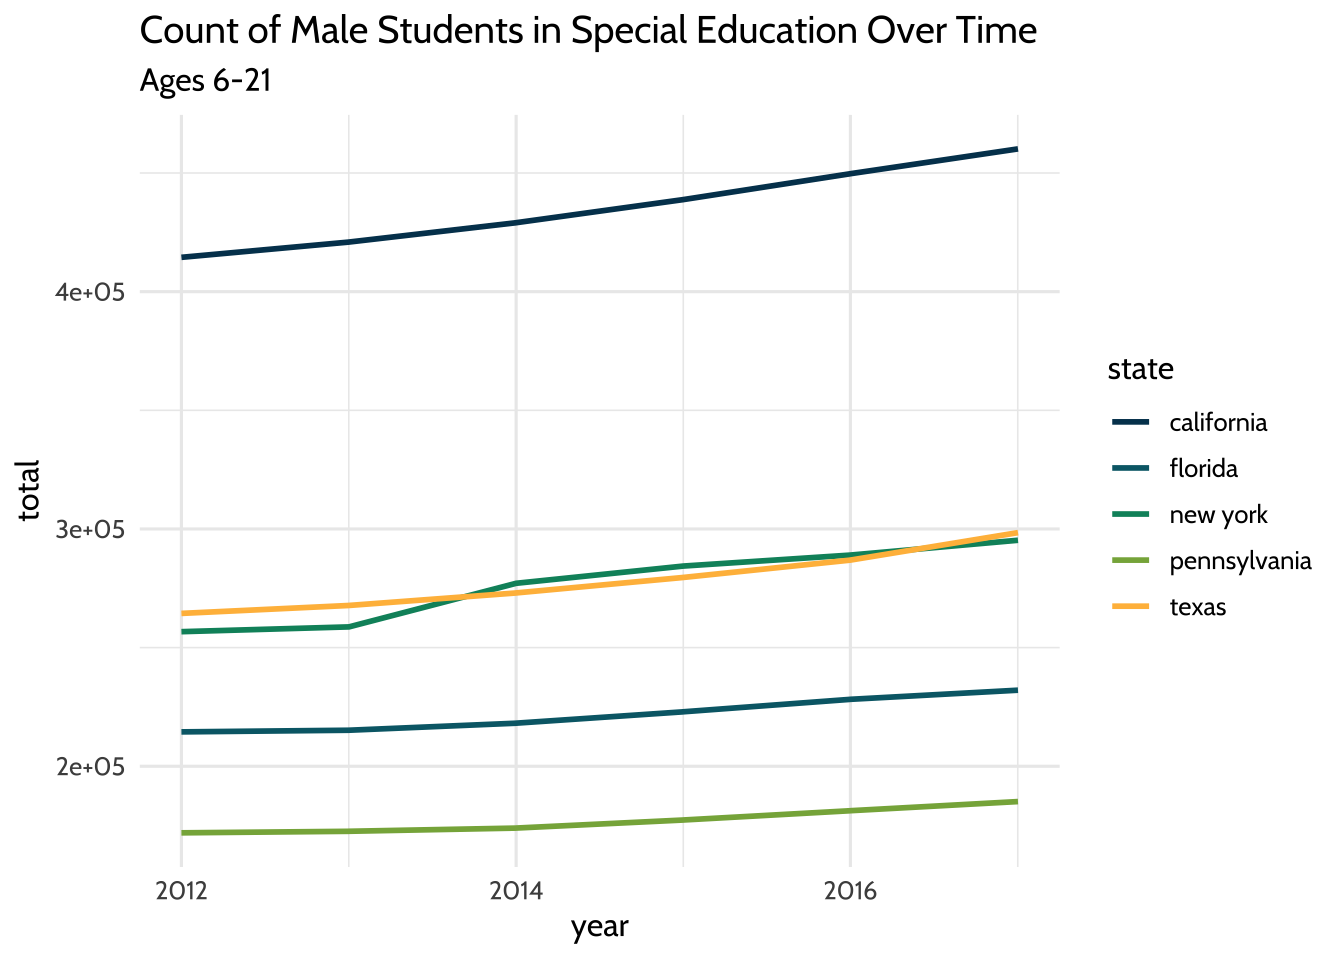 Count of Male Students in Special Education Over Time